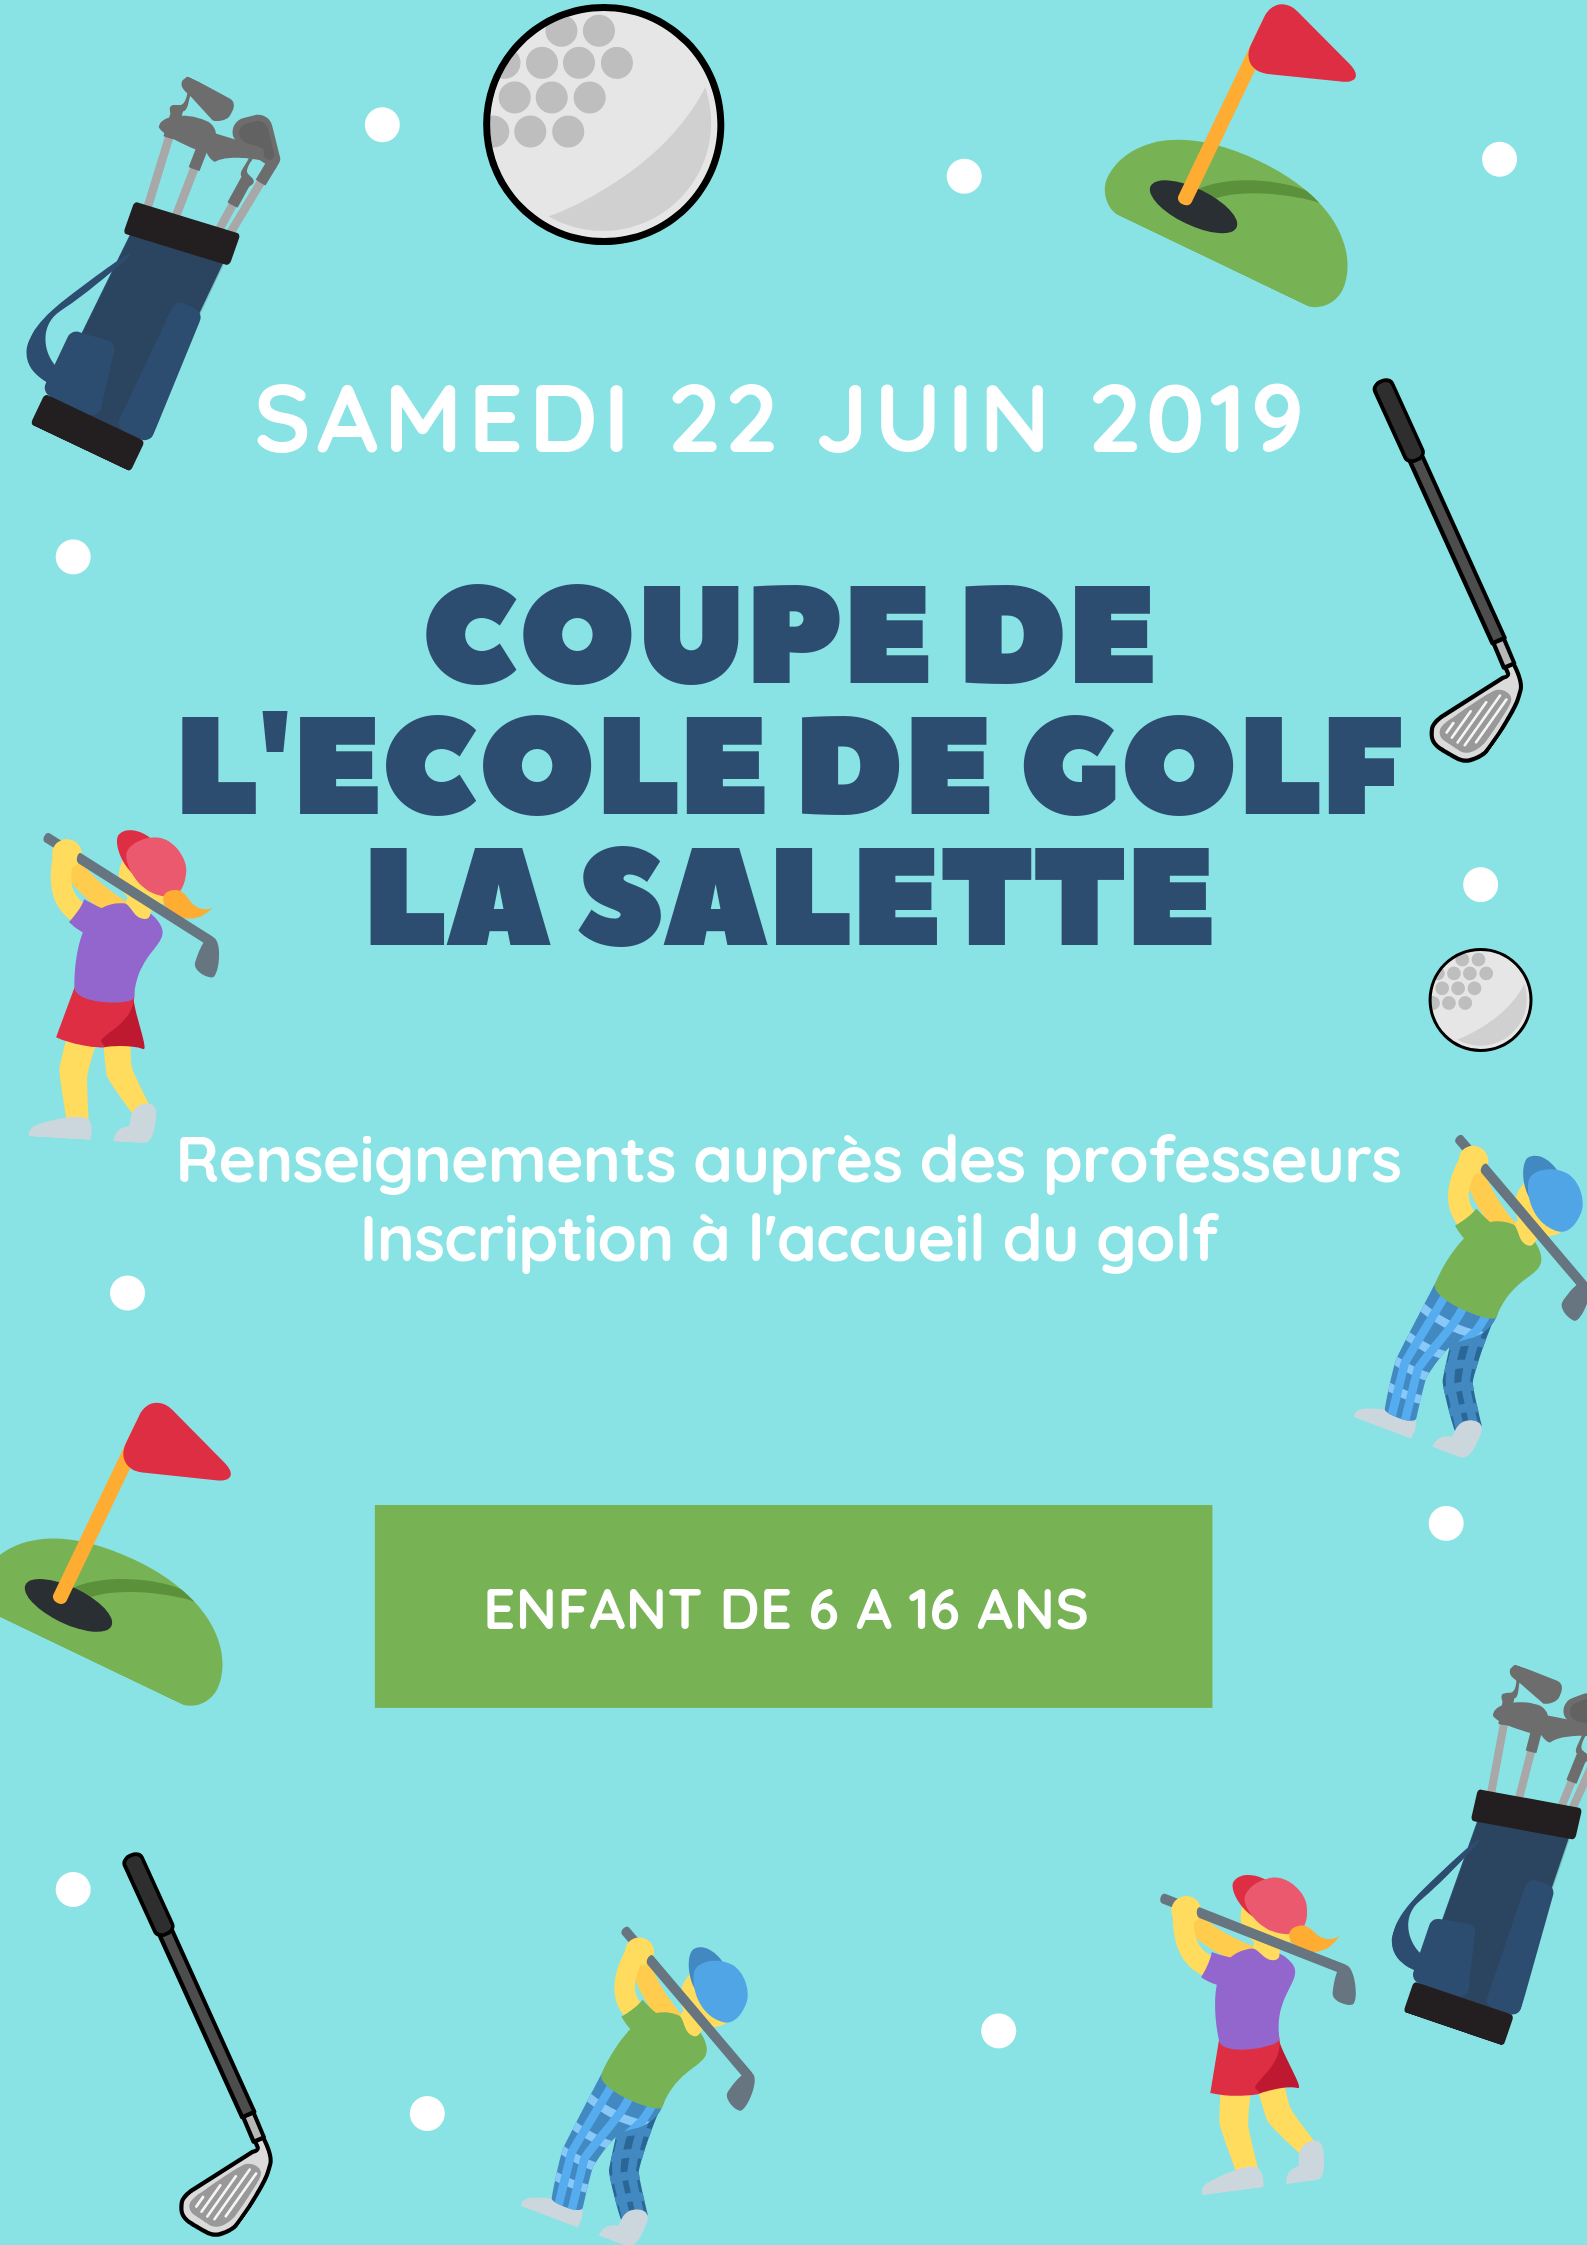 Coupe ecole de golf.png